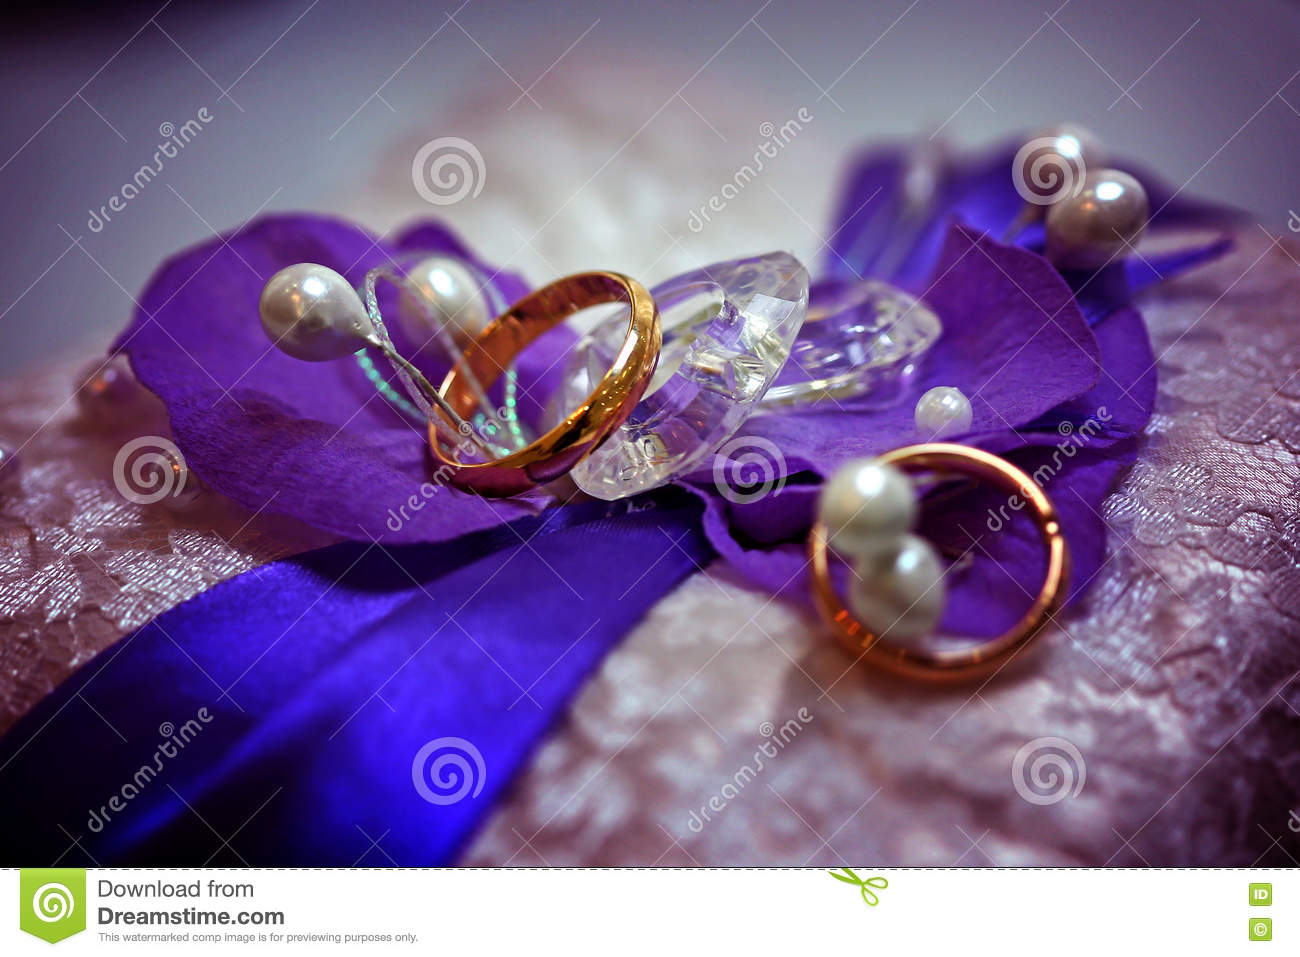 stock photo two golden wedding rings purple background stones lace image purple wedding rings Two golden wedding rings on purple background with stones lace